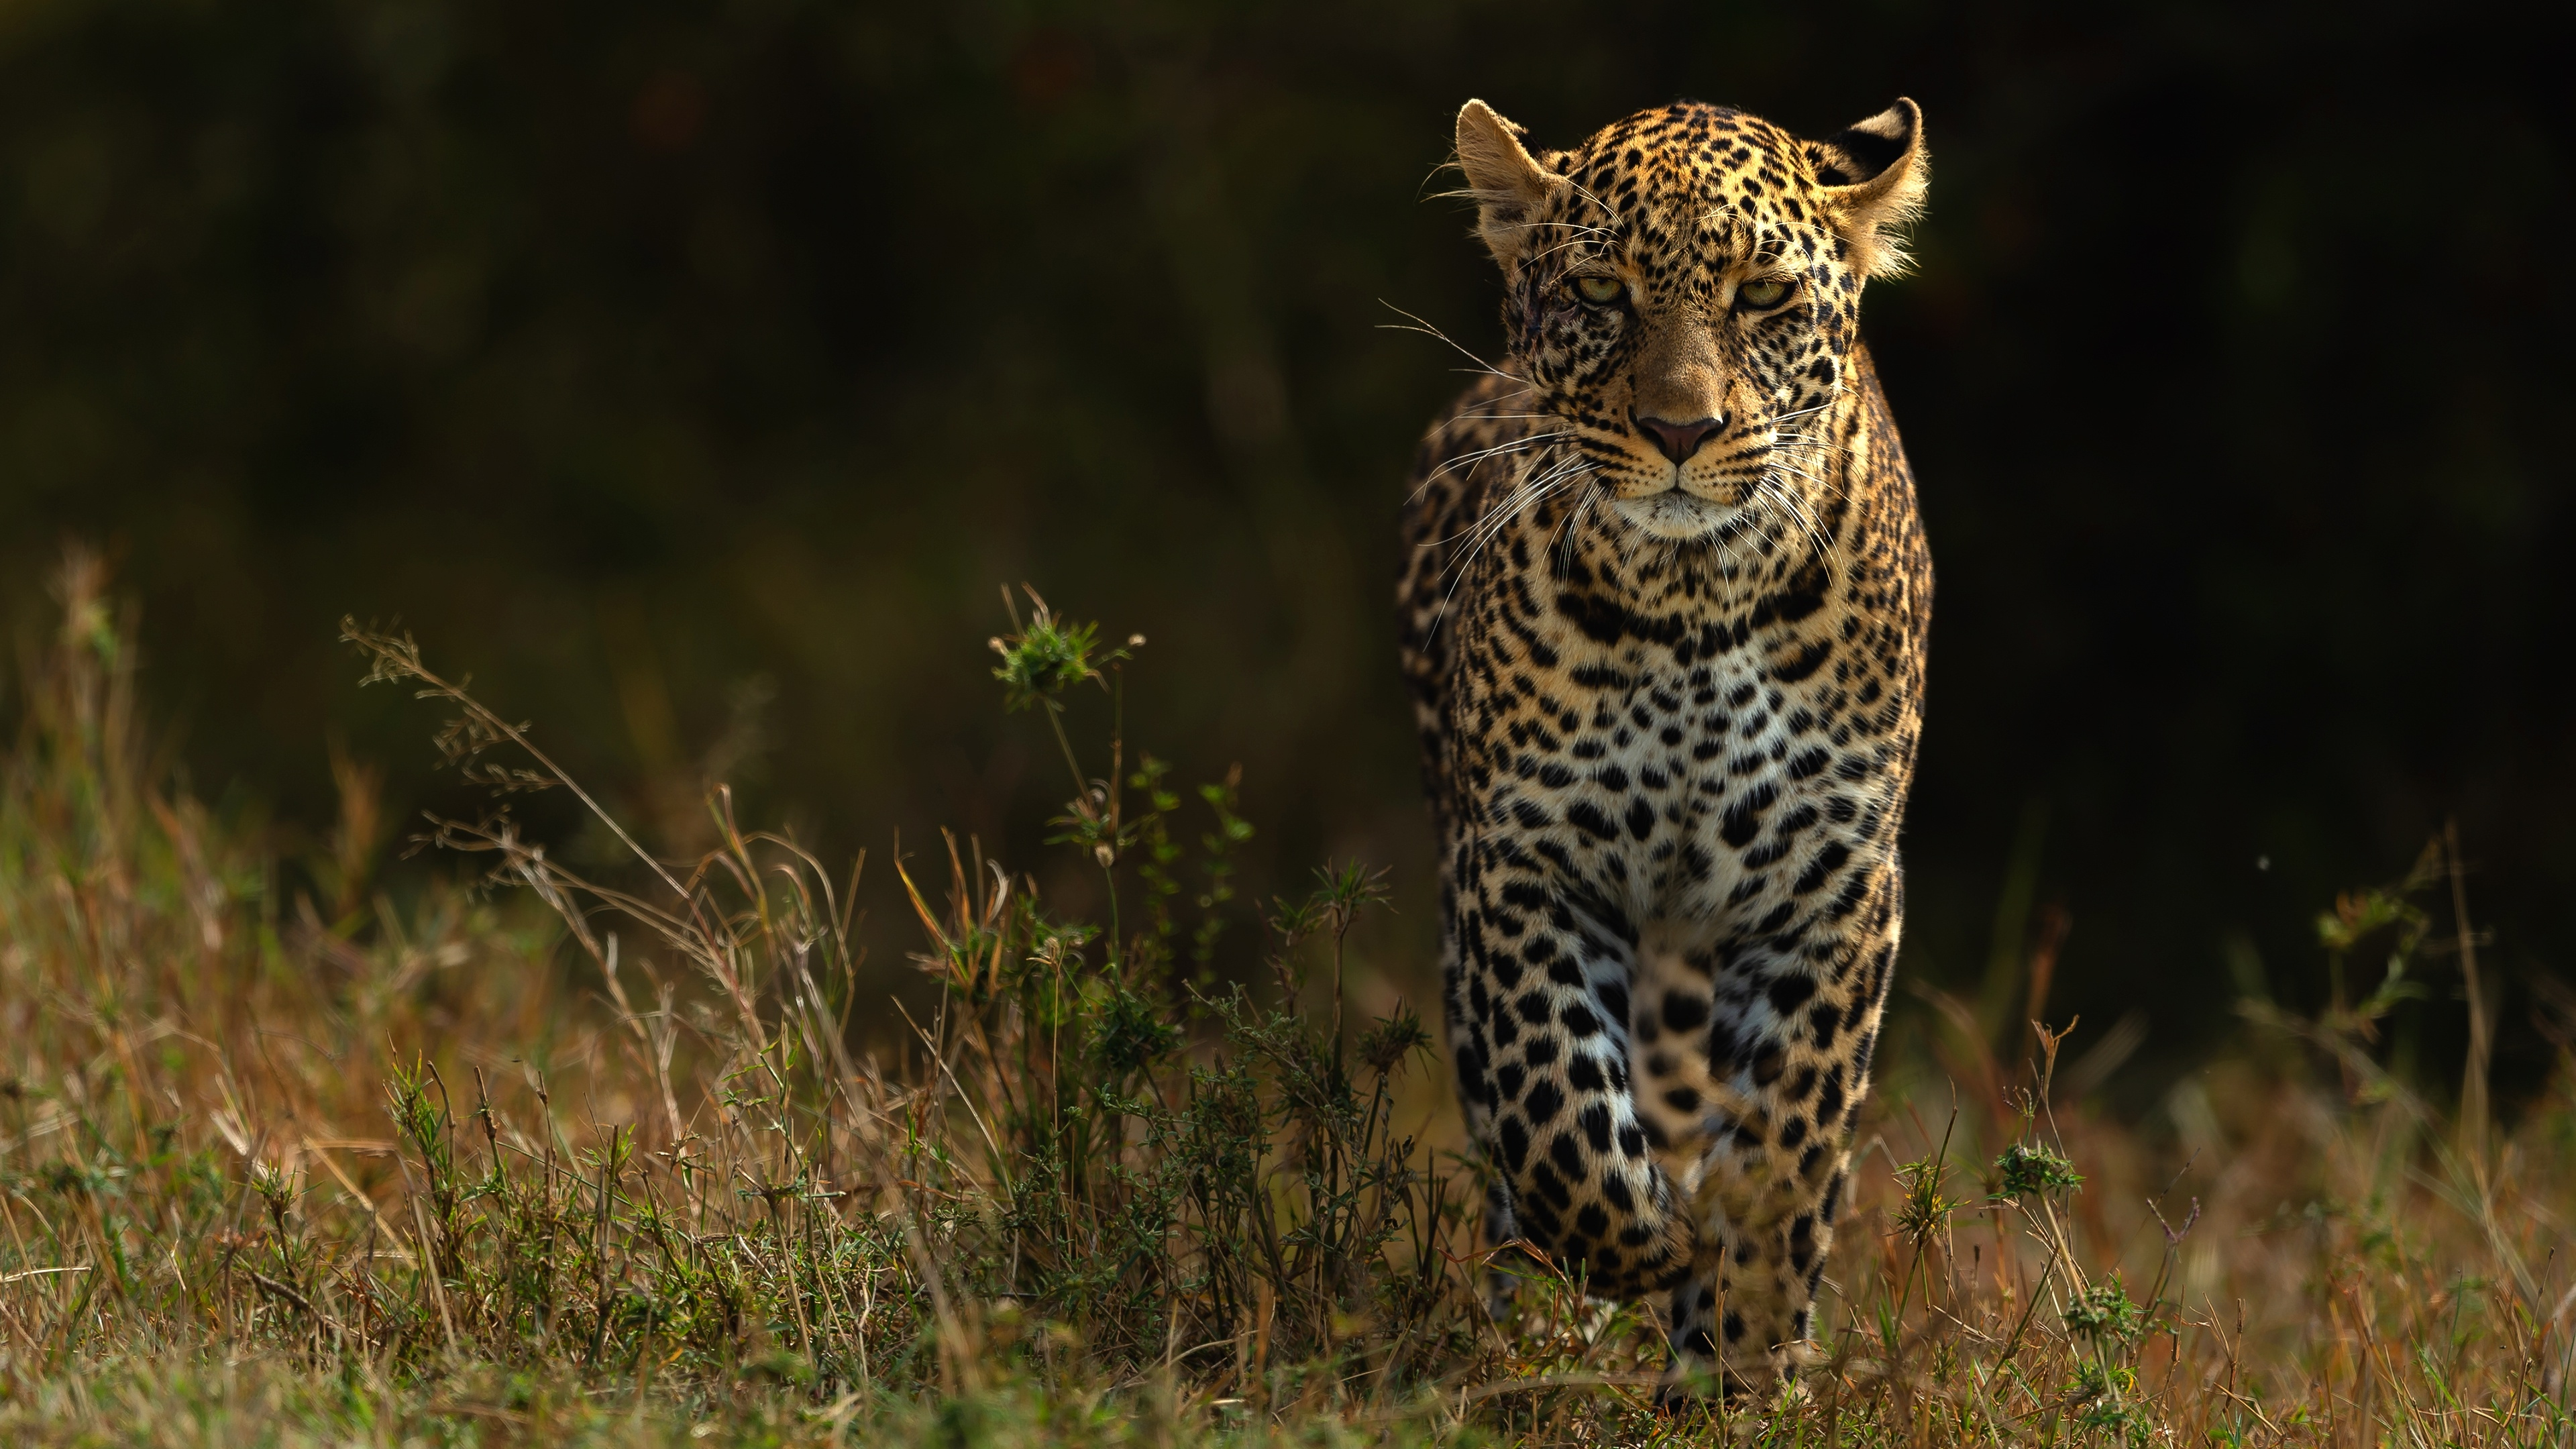 4 Wild Animals Hd Wallpapers Backgrounds